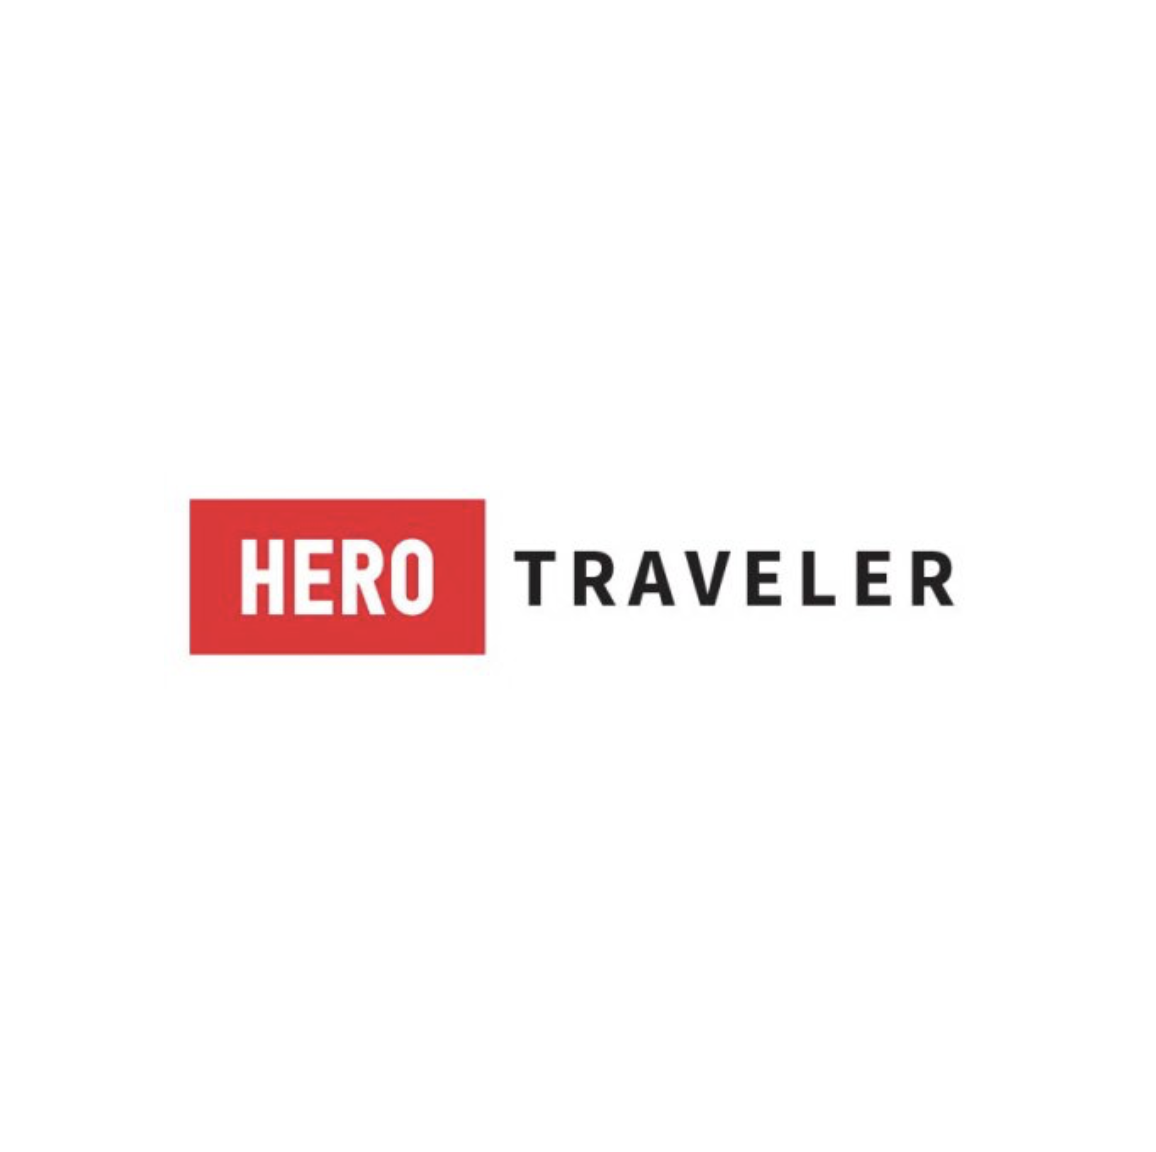 Hero Traveler Logo by Joost Bastmeijer.png